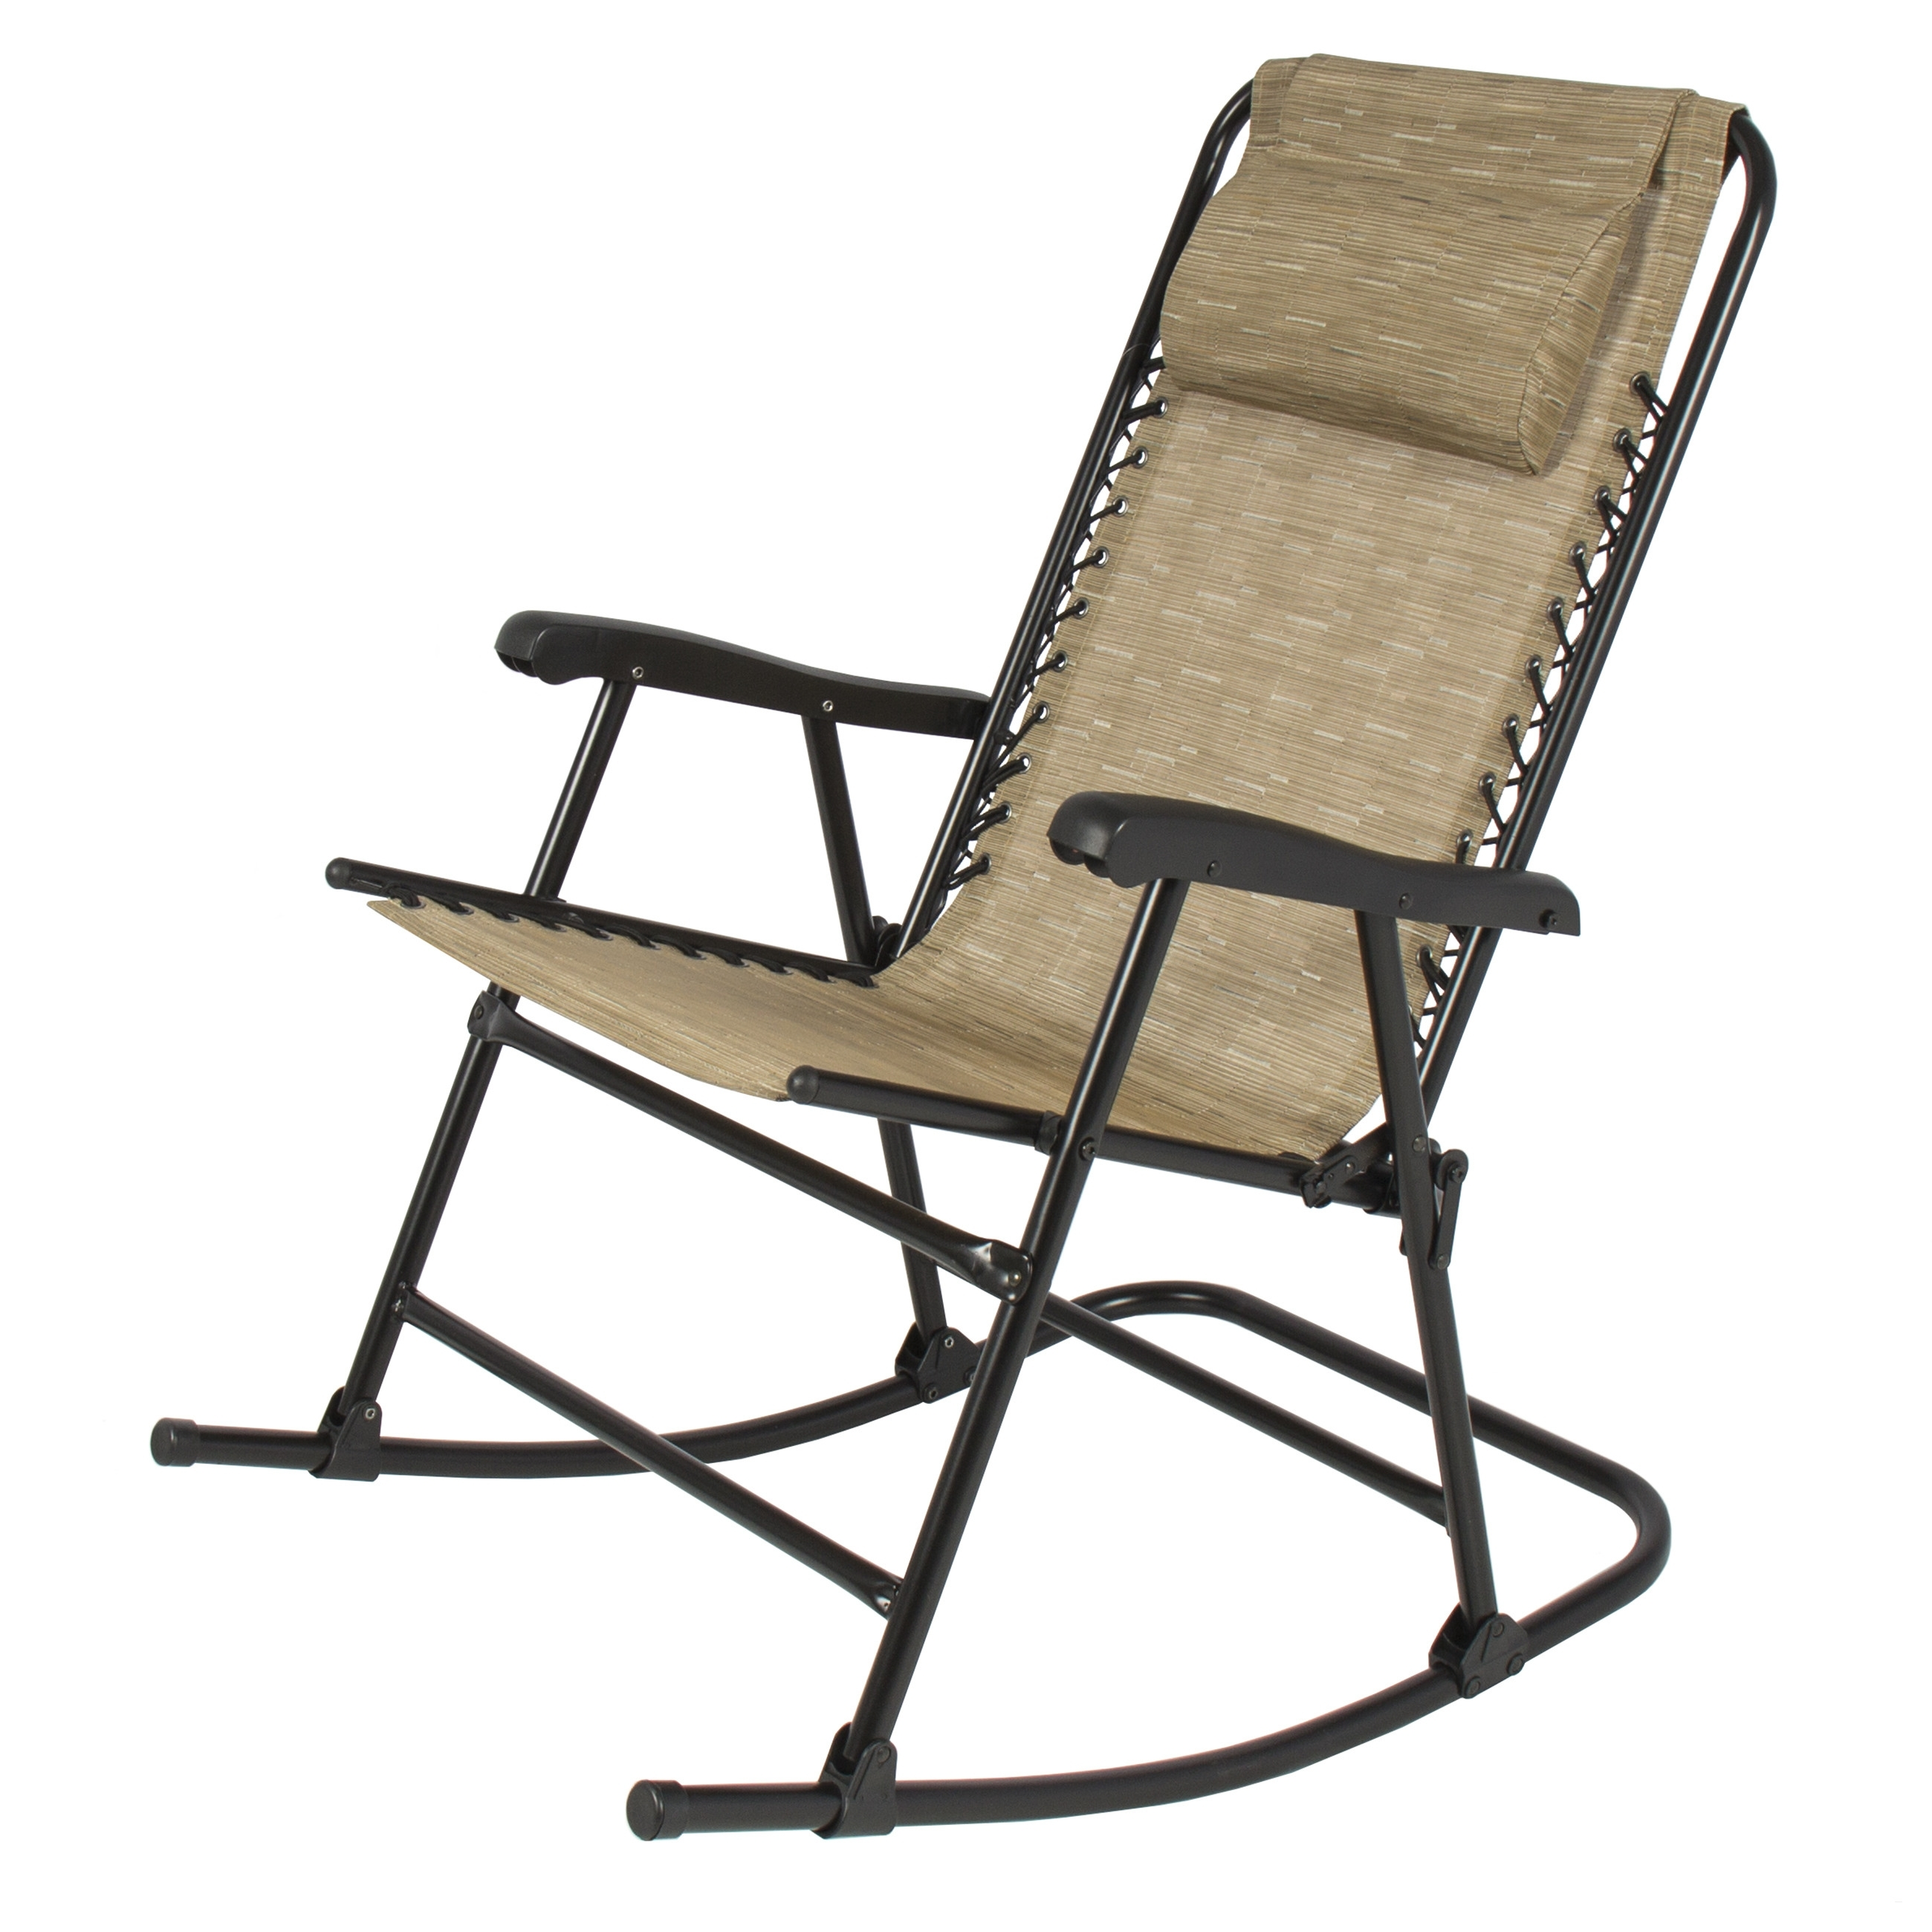 Widely Used Patio Rocking Chairs With Regard To Red Outdoor Rocking Chair – Nice Chair Lovely Patio Rocking Chairs (View 10 of 15)